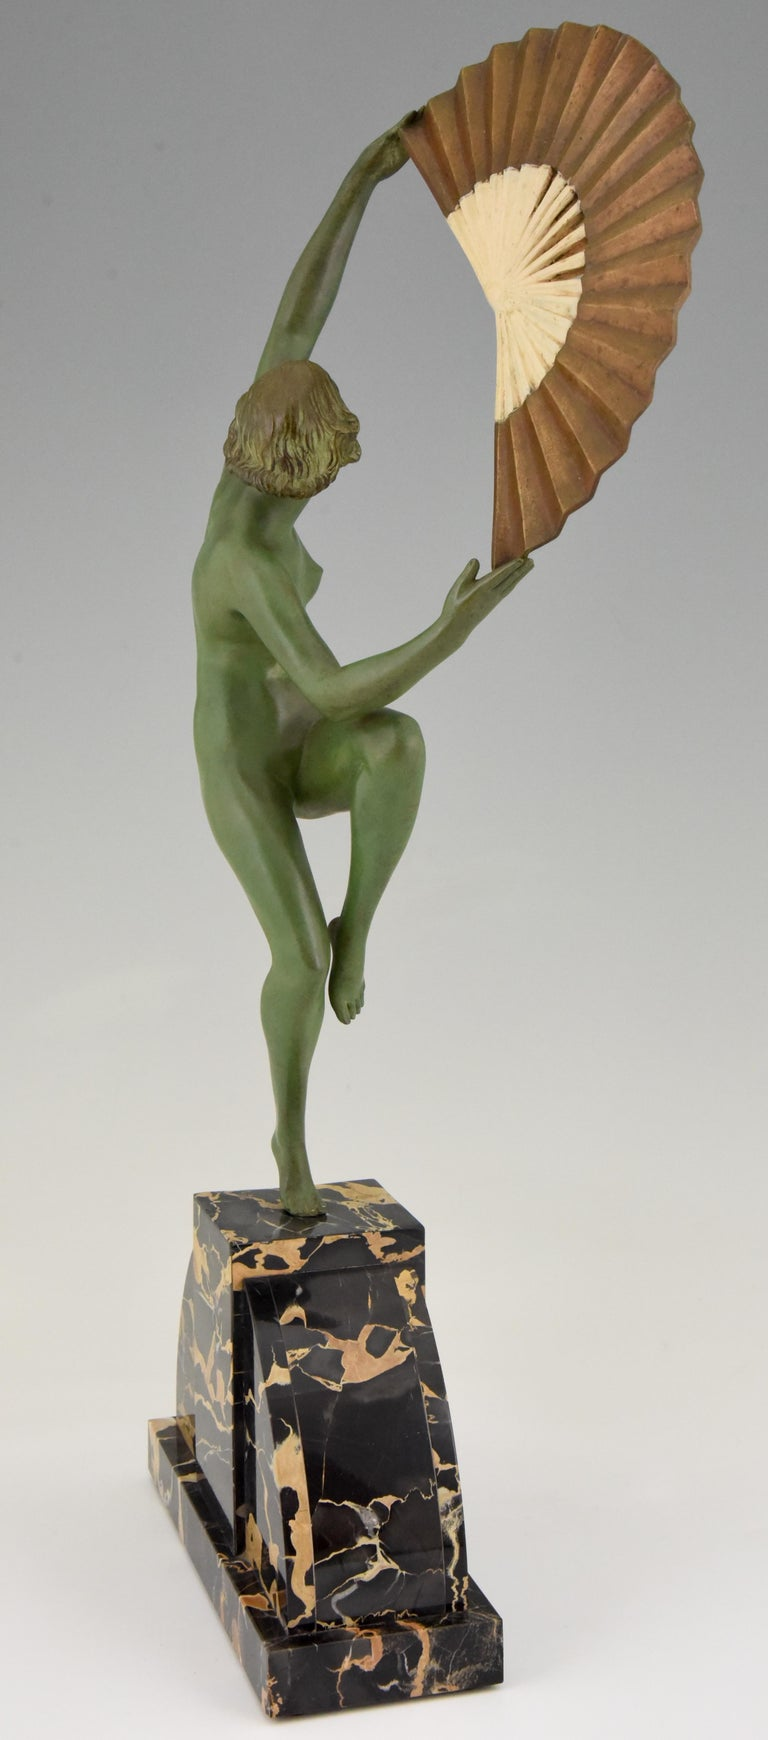 Early 20th Century Art Deco Bronze Sculpture Nude Fan Dancer Marcel Andre Bouraine, France, 1925 For Sale